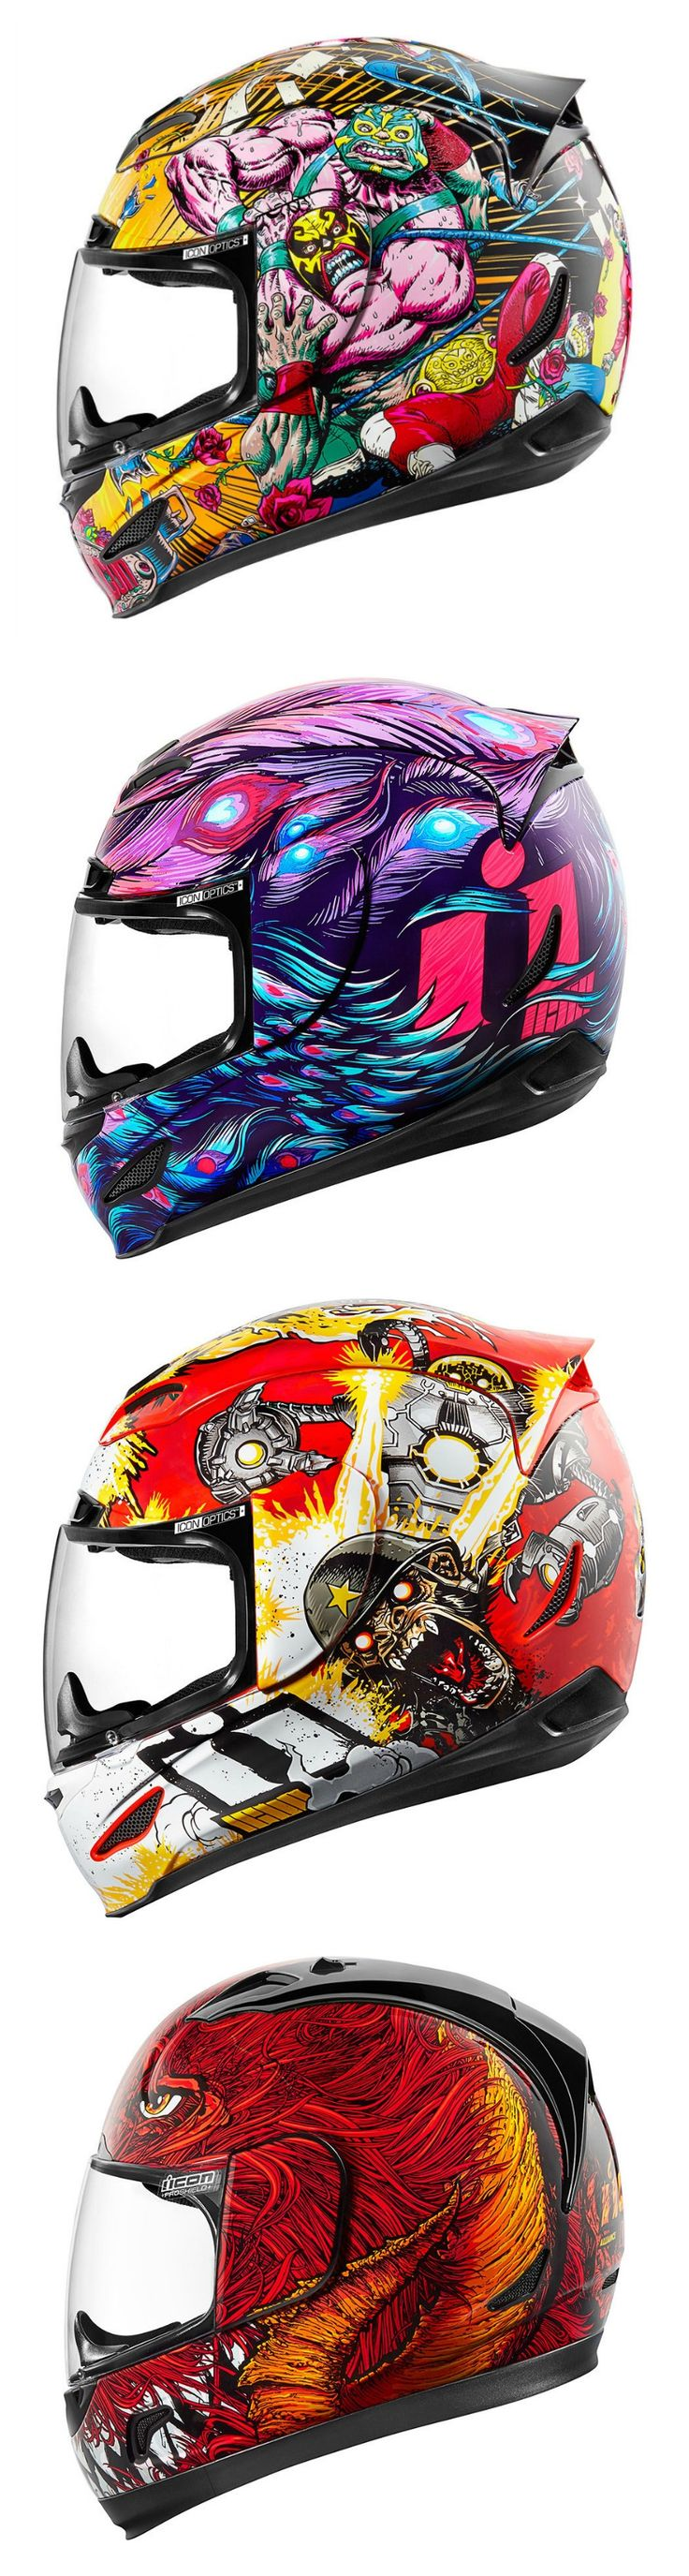 Icon Motorcycle Helmets for Spring 2017